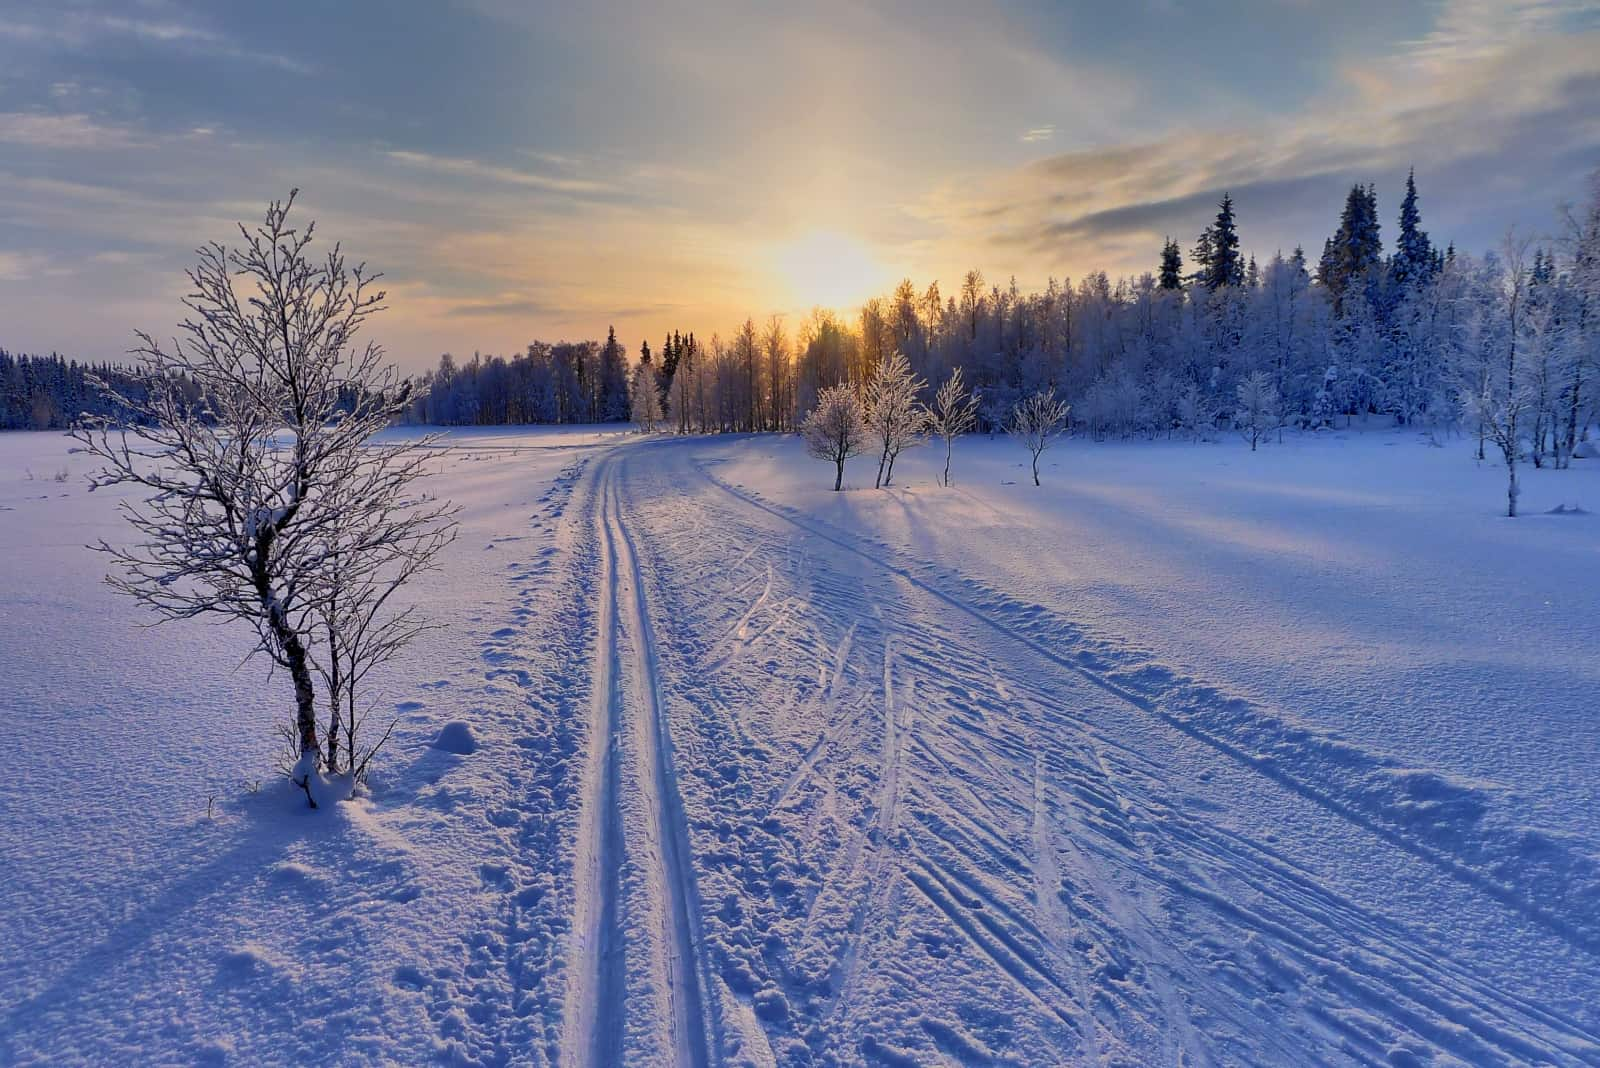 Cross country ski track in Ruka, Finland Photo Credit: © Timo Newton-Syms via Flickr